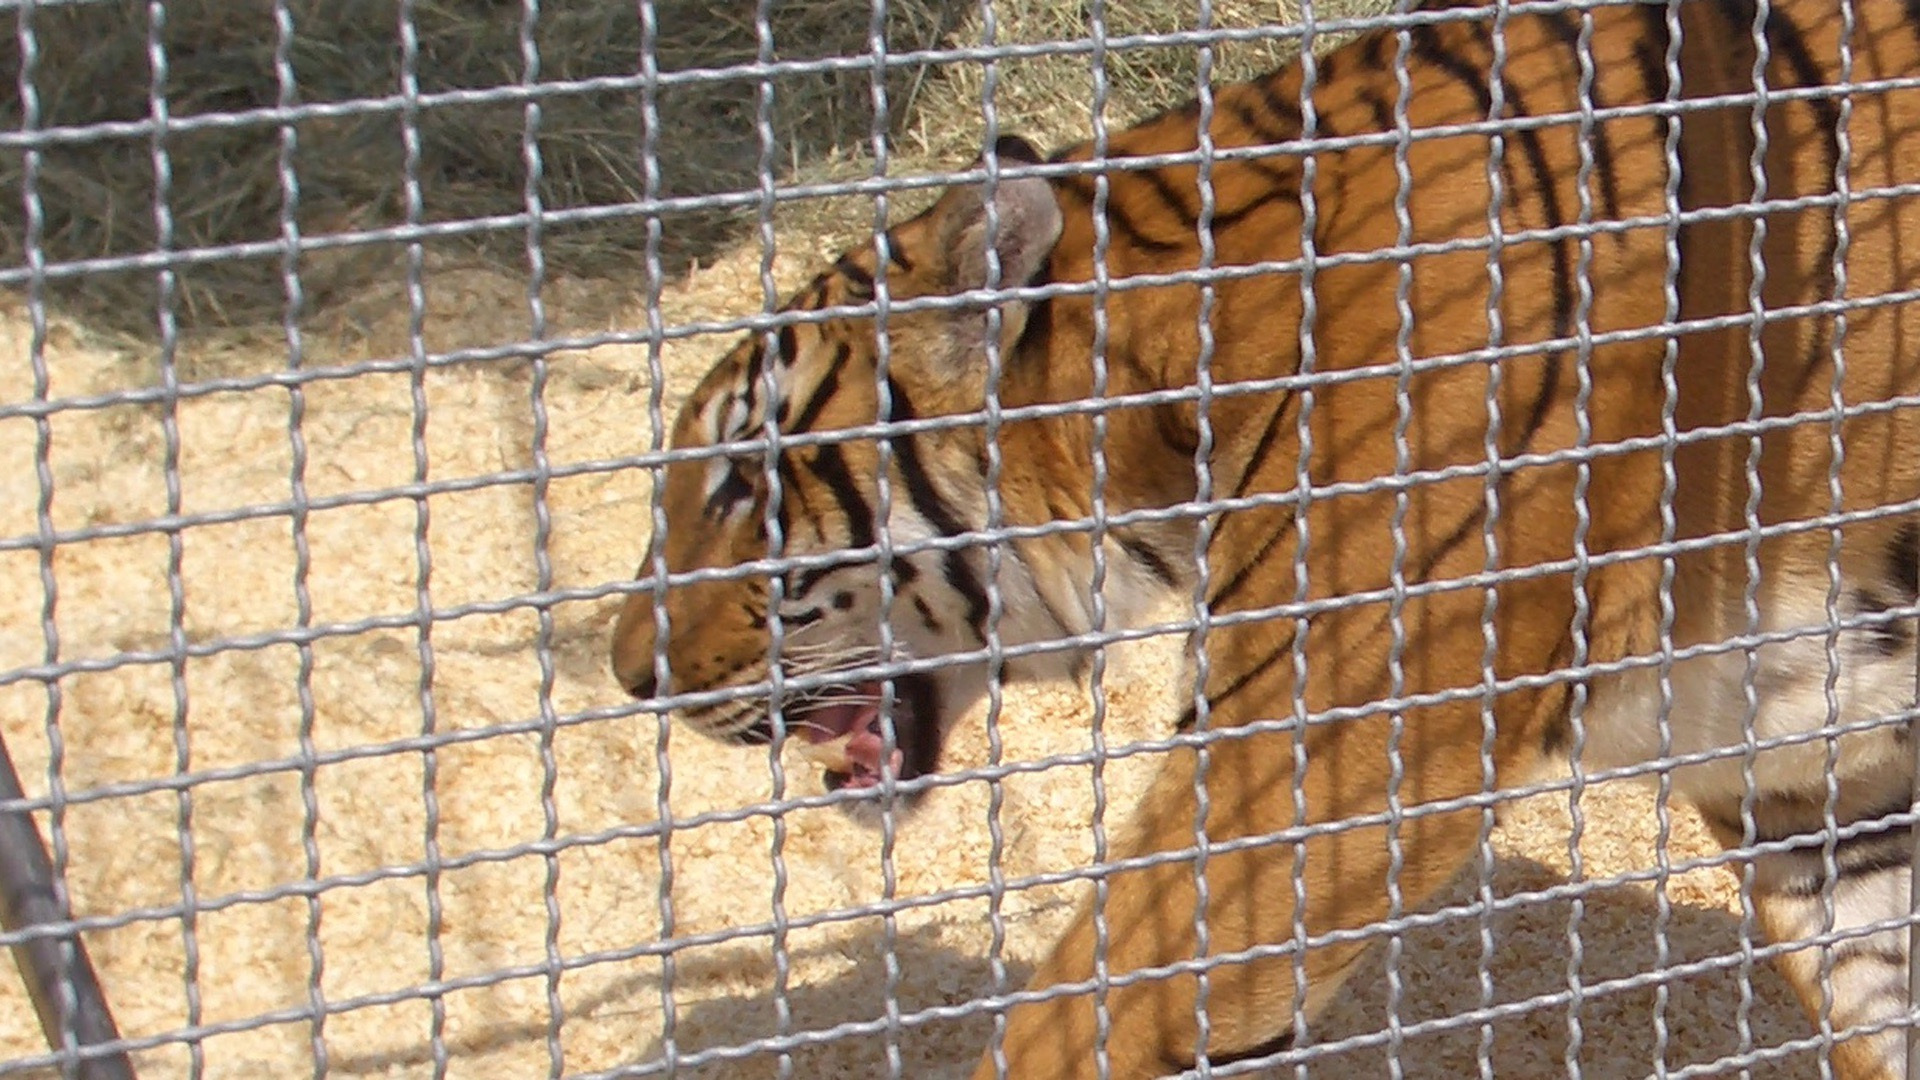 A tiger in captivity at the Circus.